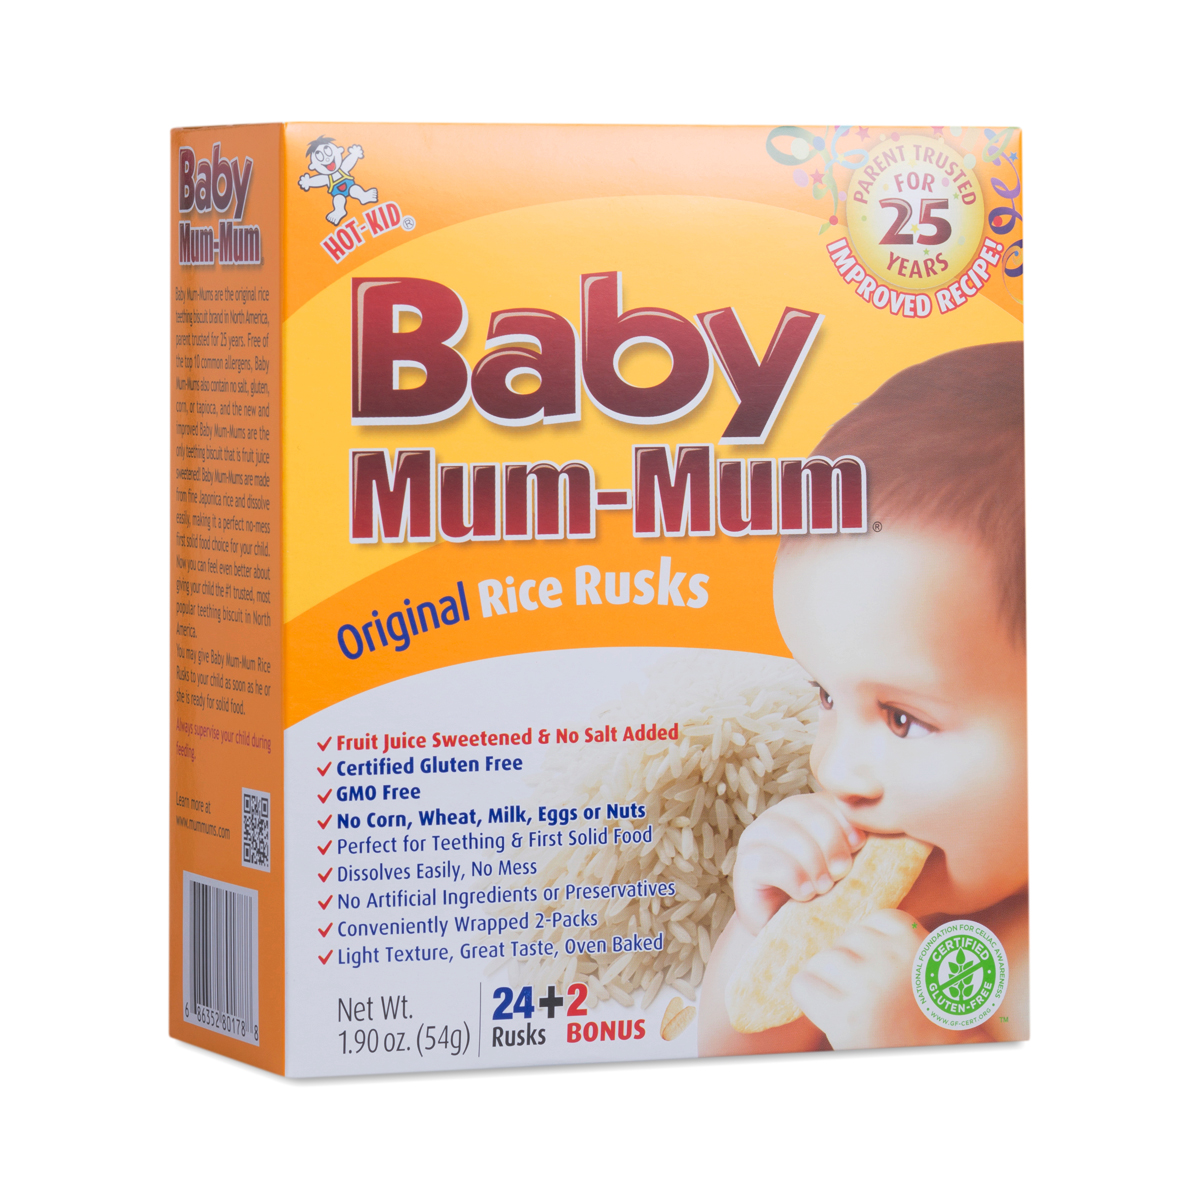 Original Baby Mum-Mum Rice Rusks by Hot Kid - Thrive Market